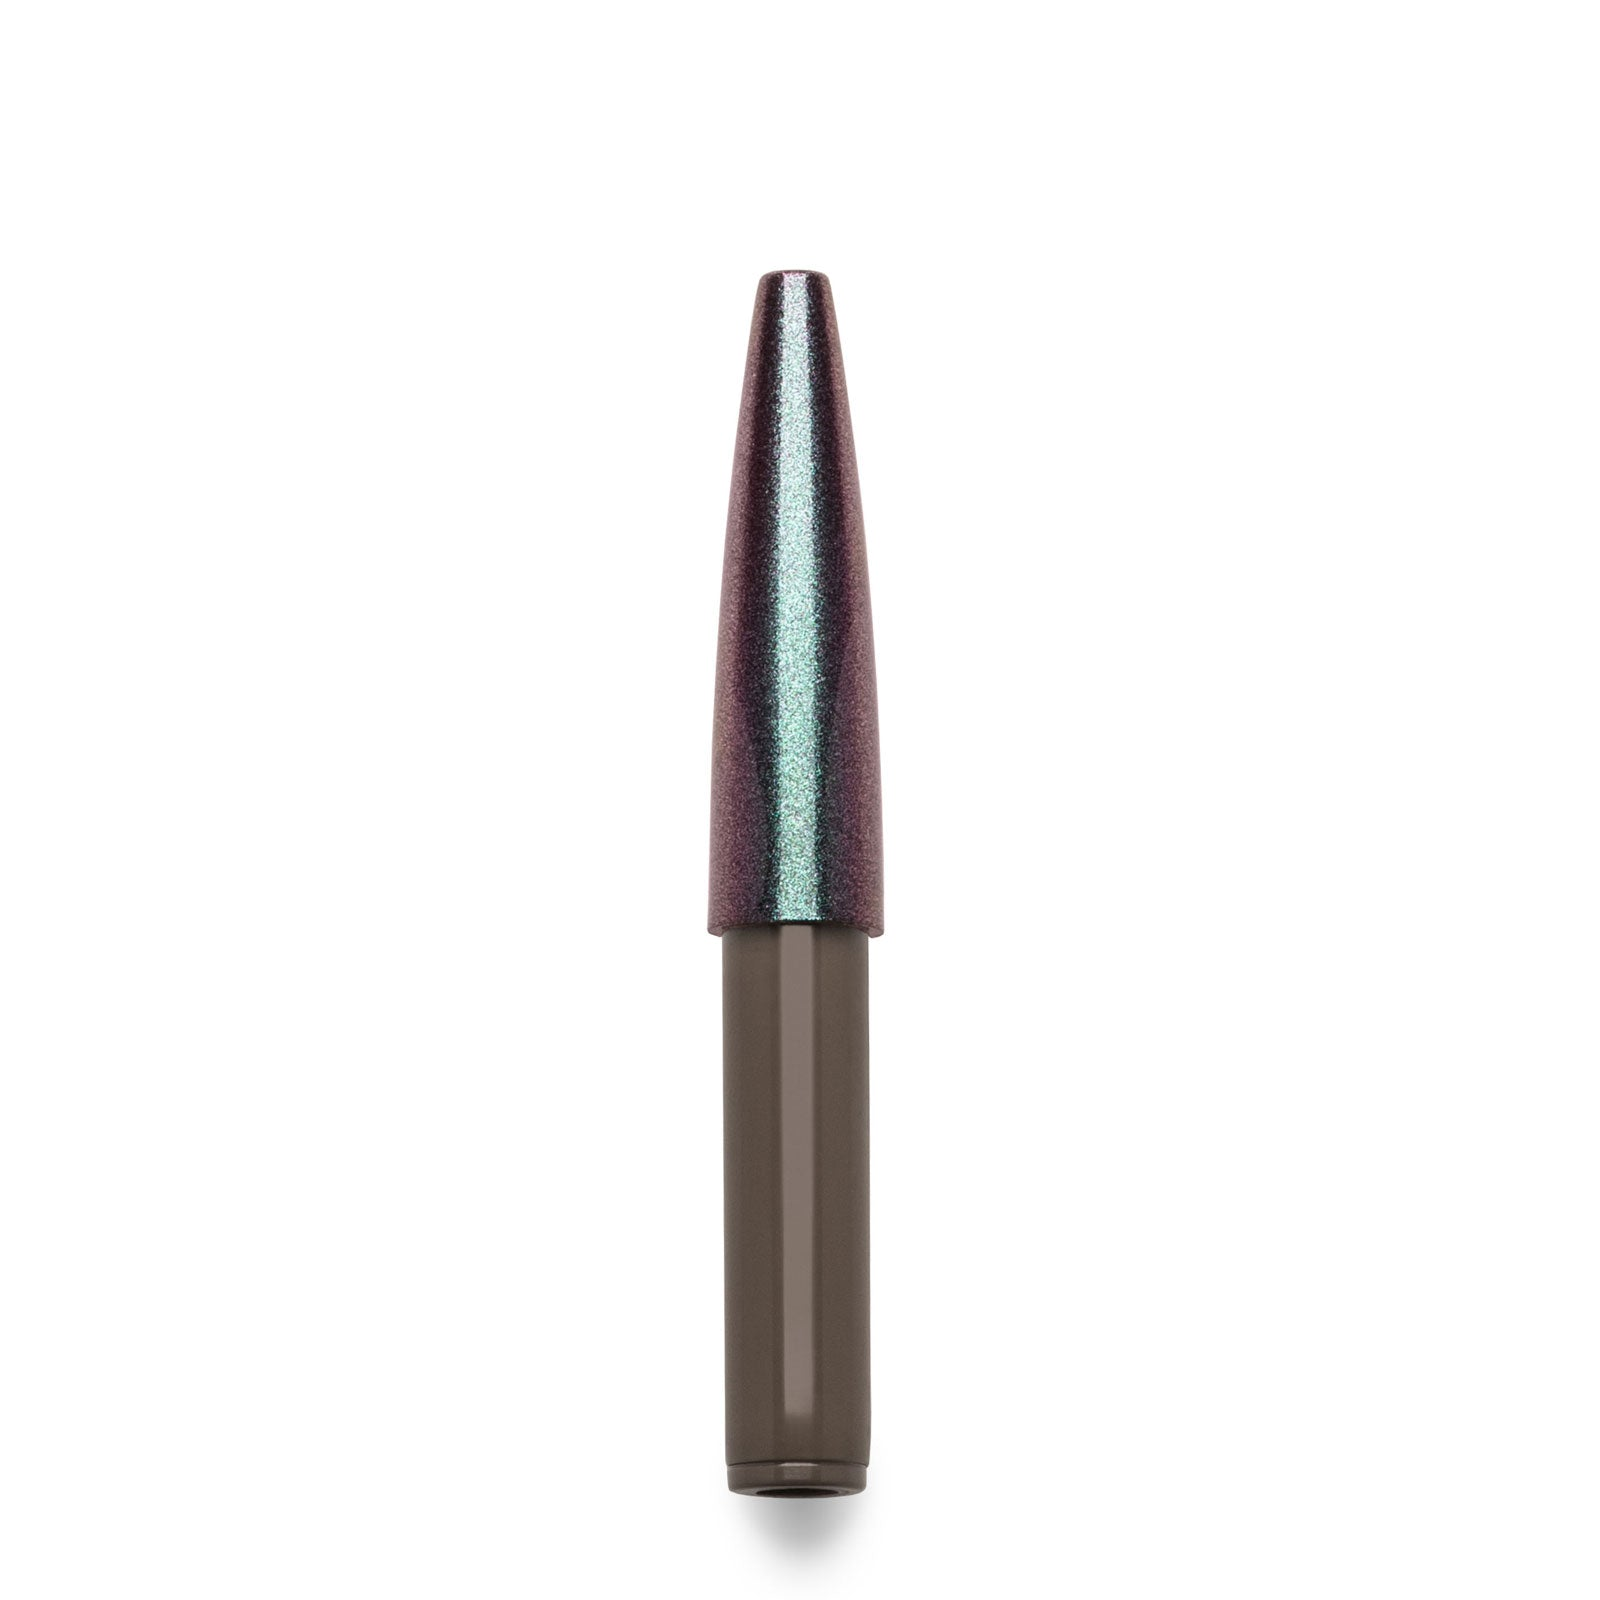 Surratt Beauty Expressioniste Brow Pencil Refill Cartridge 0.1ml